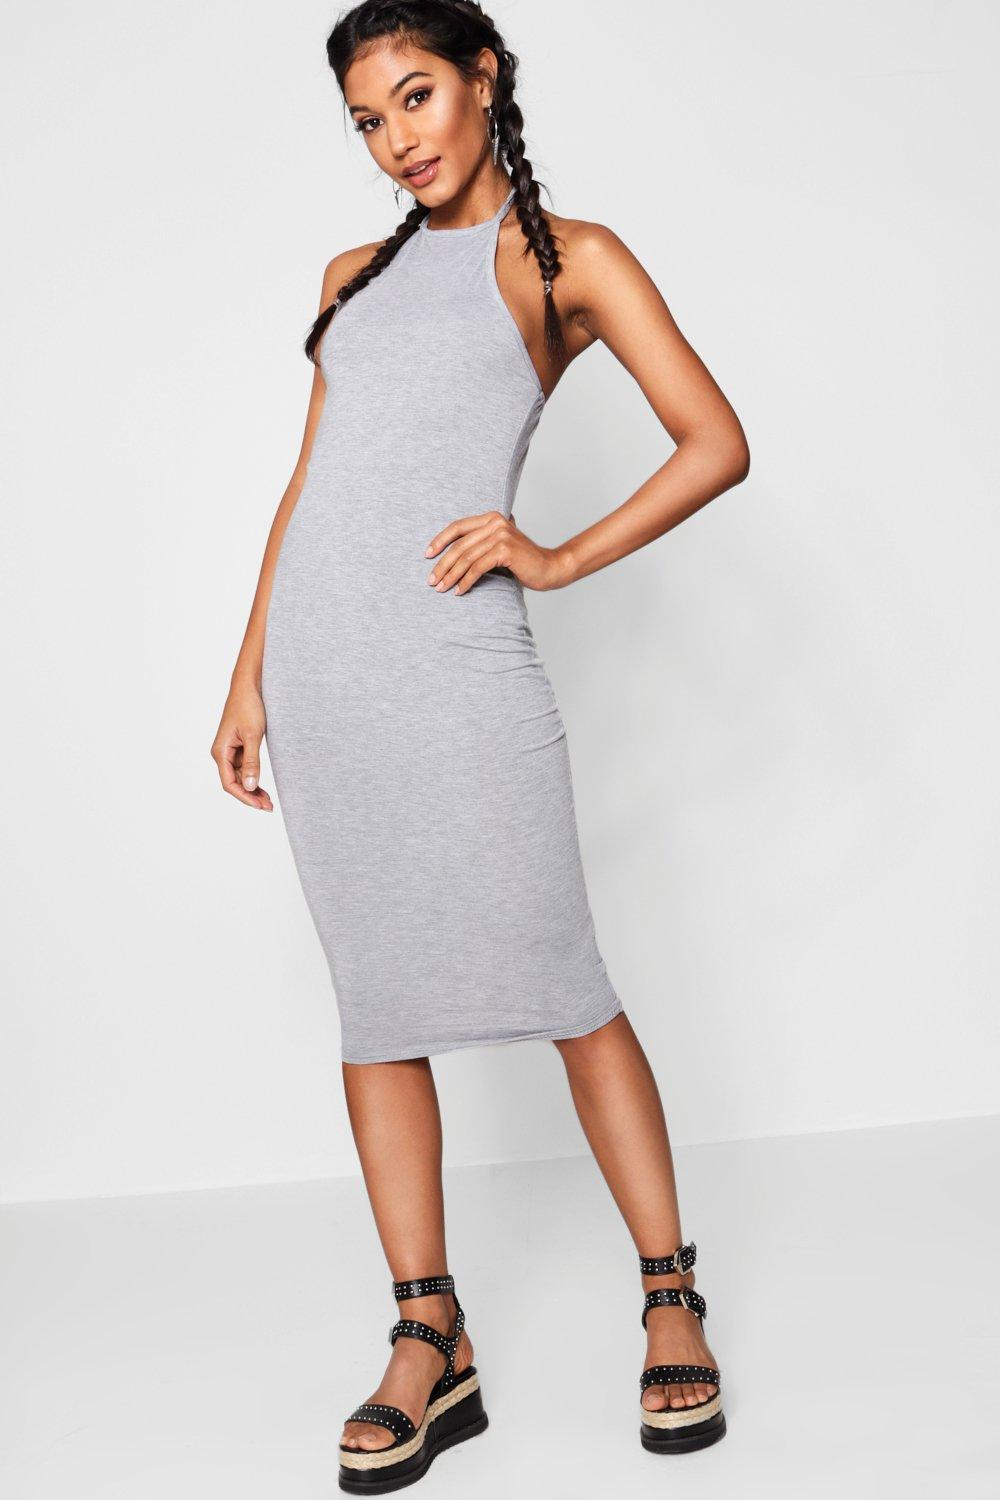 63ffc5d6c2df Gallery. Previously sold at: Boohoo · Women's Midi Dresses ...